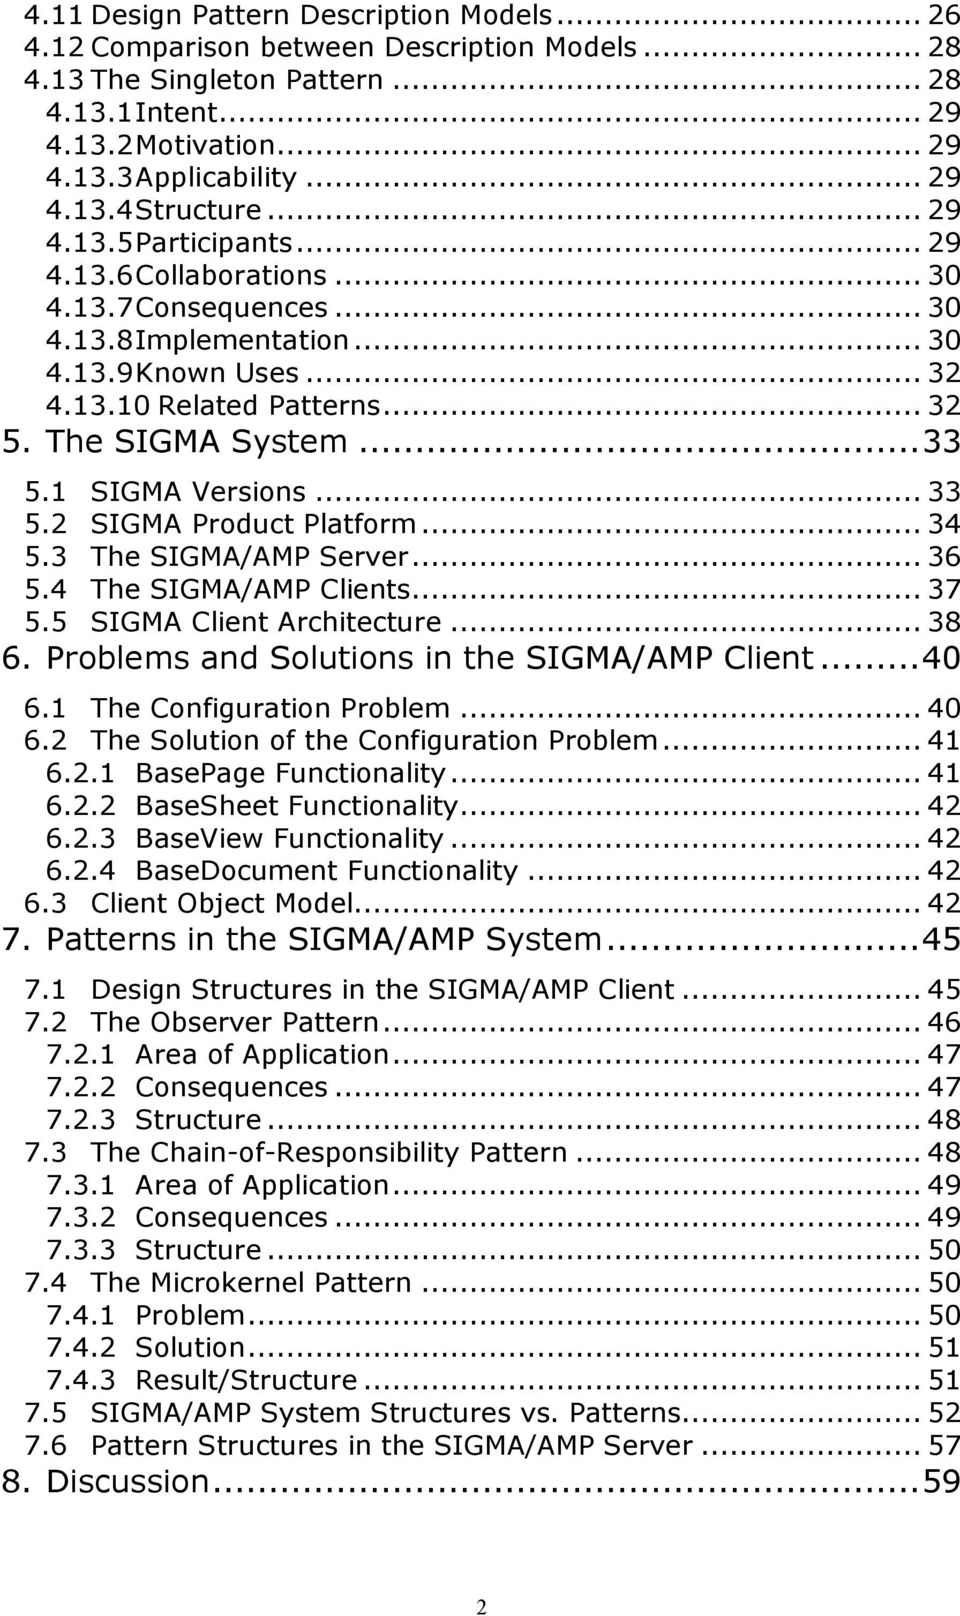 1 SIGMA Versions... 33 5.2 SIGMA Product Platform... 34 5.3 The SIGMA/AMP Server... 36 5.4 The SIGMA/AMP Clients... 37 5.5 SIGMA Client Architecture... 38 6.